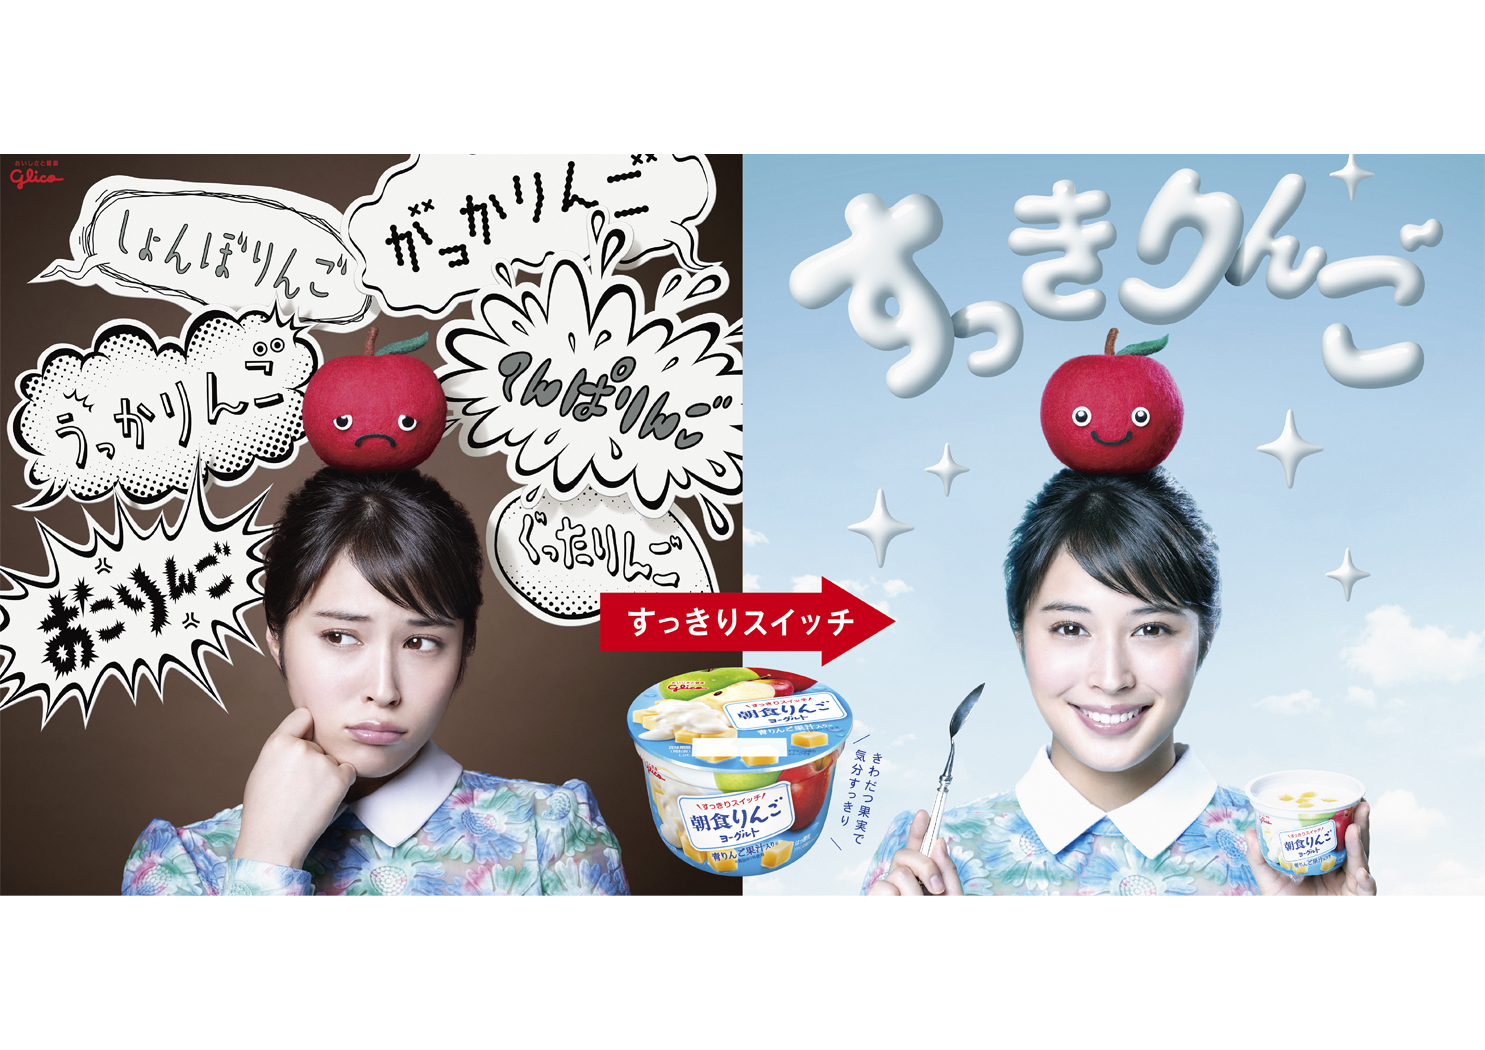 choshokuringo yogurt top board